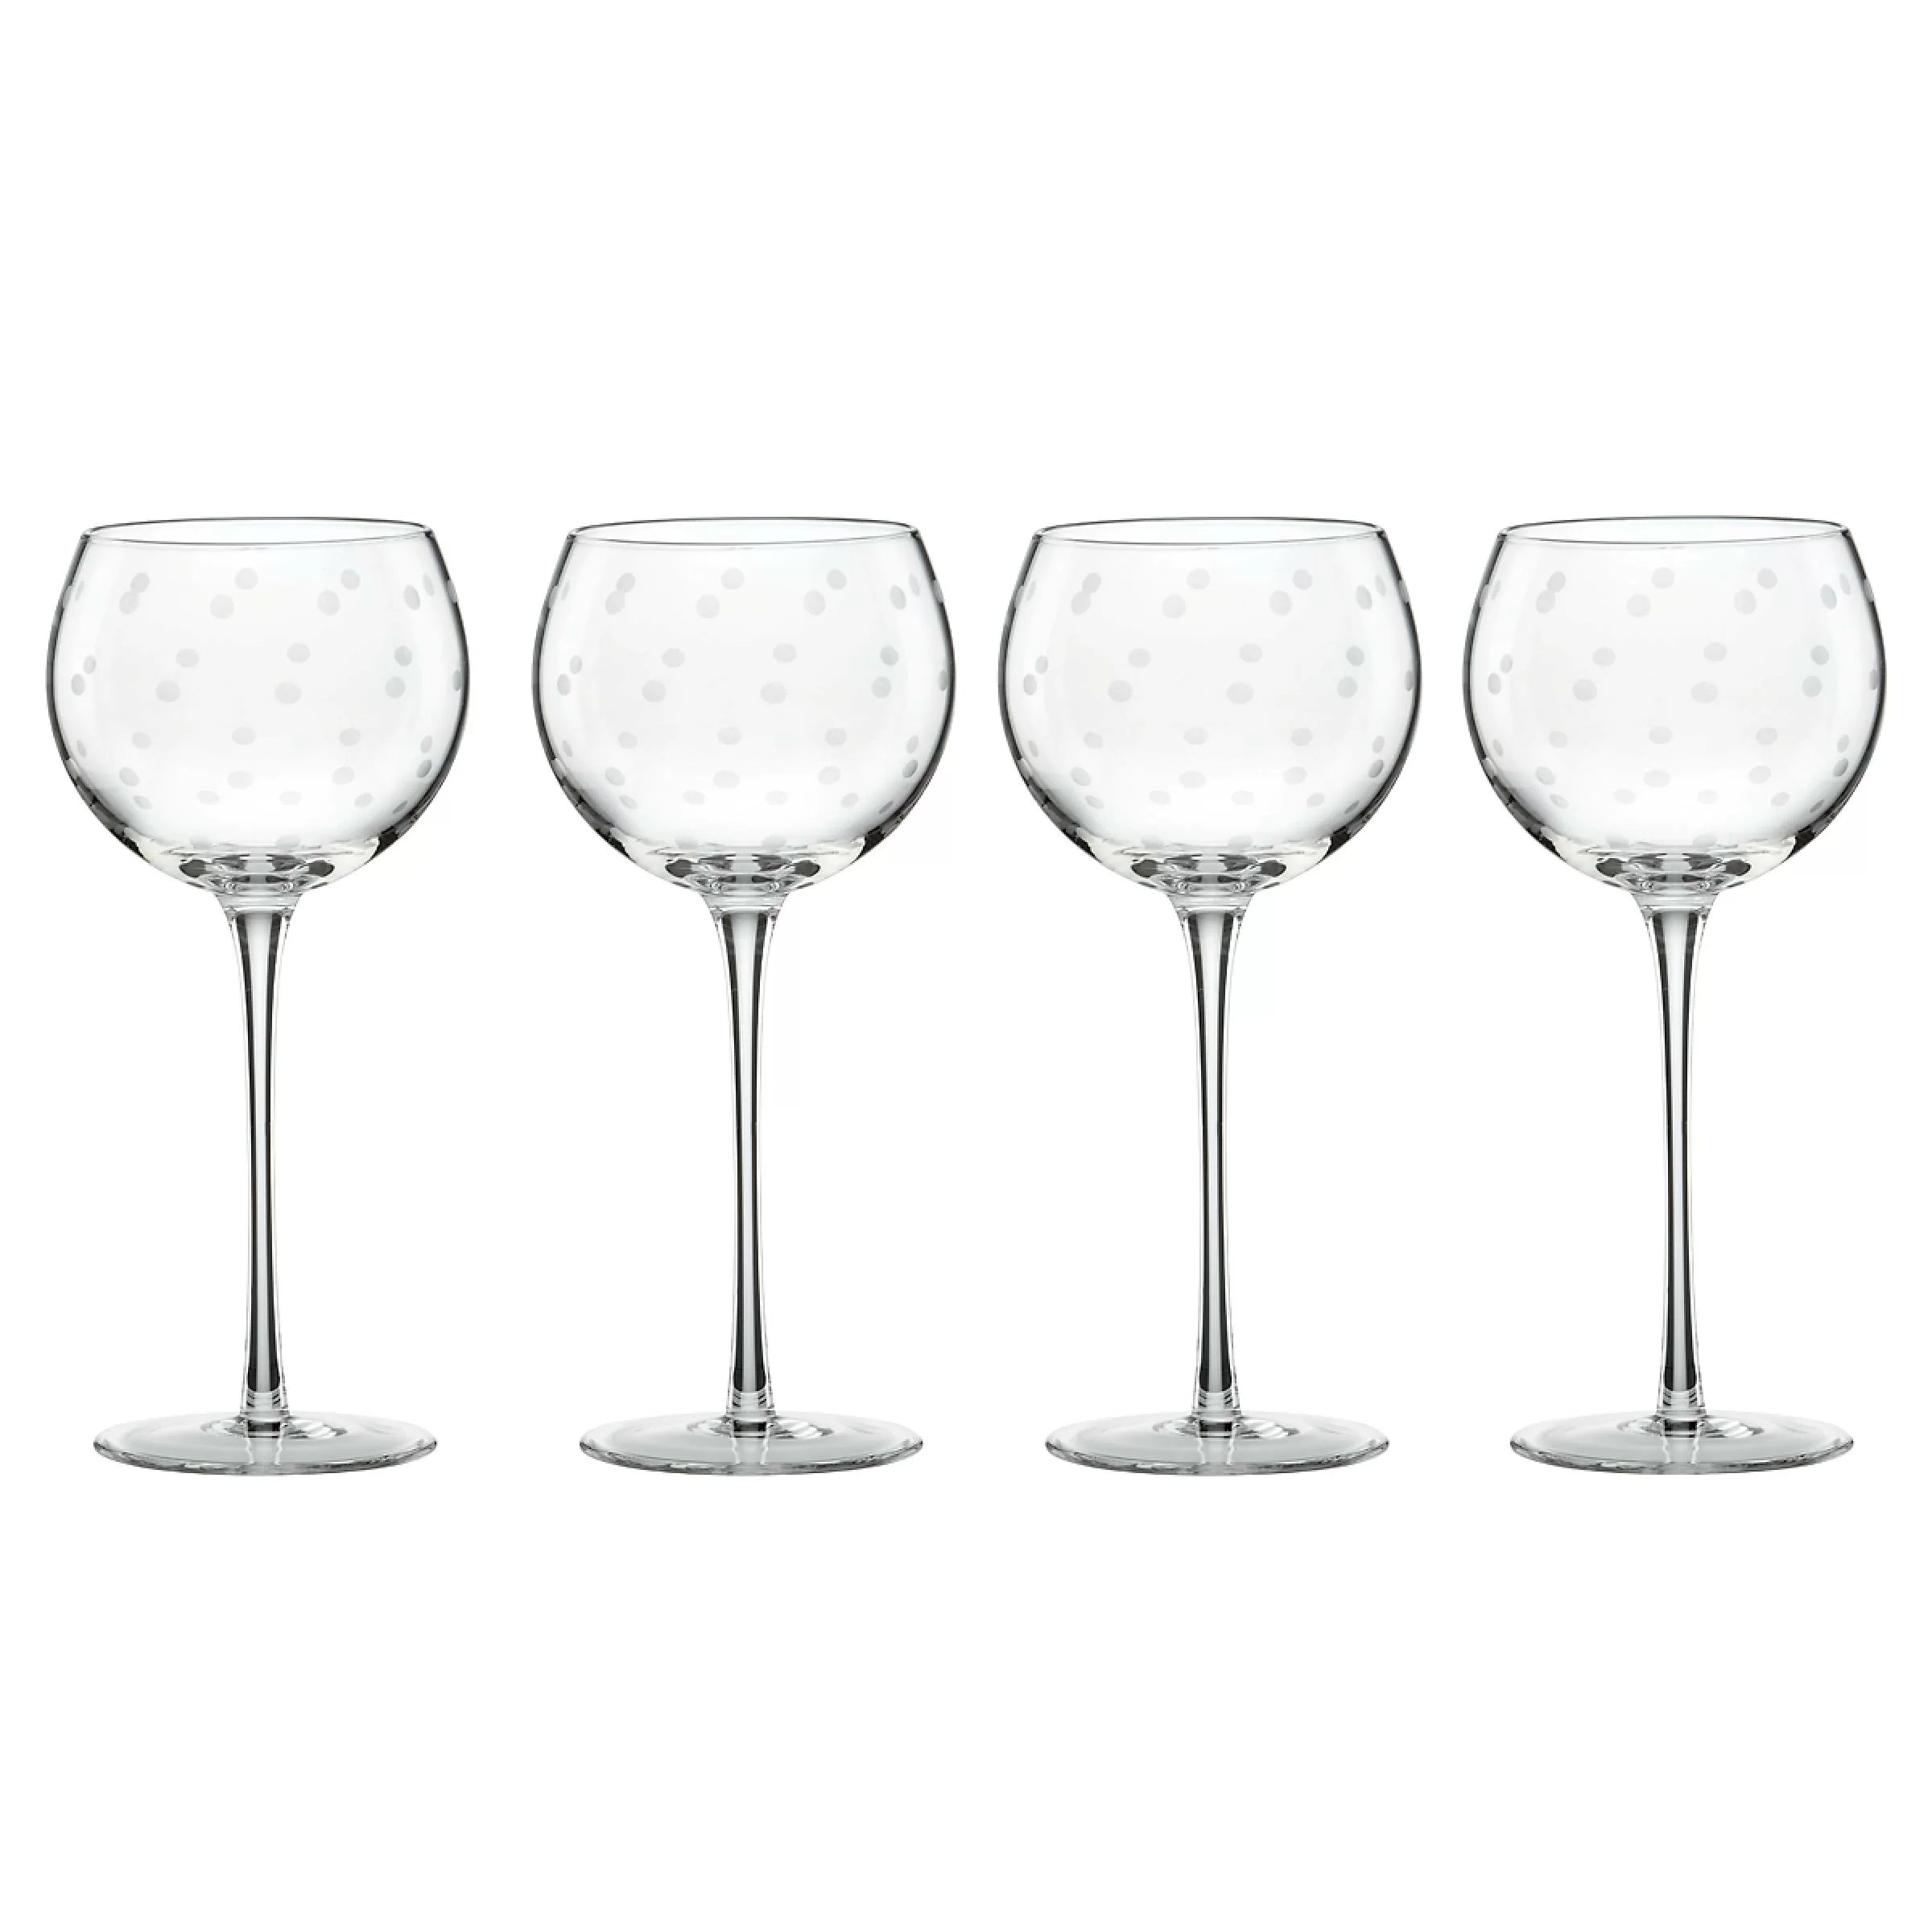 Wine Glasses Larabee Dot 16 Oz All Purpose Wine Glass